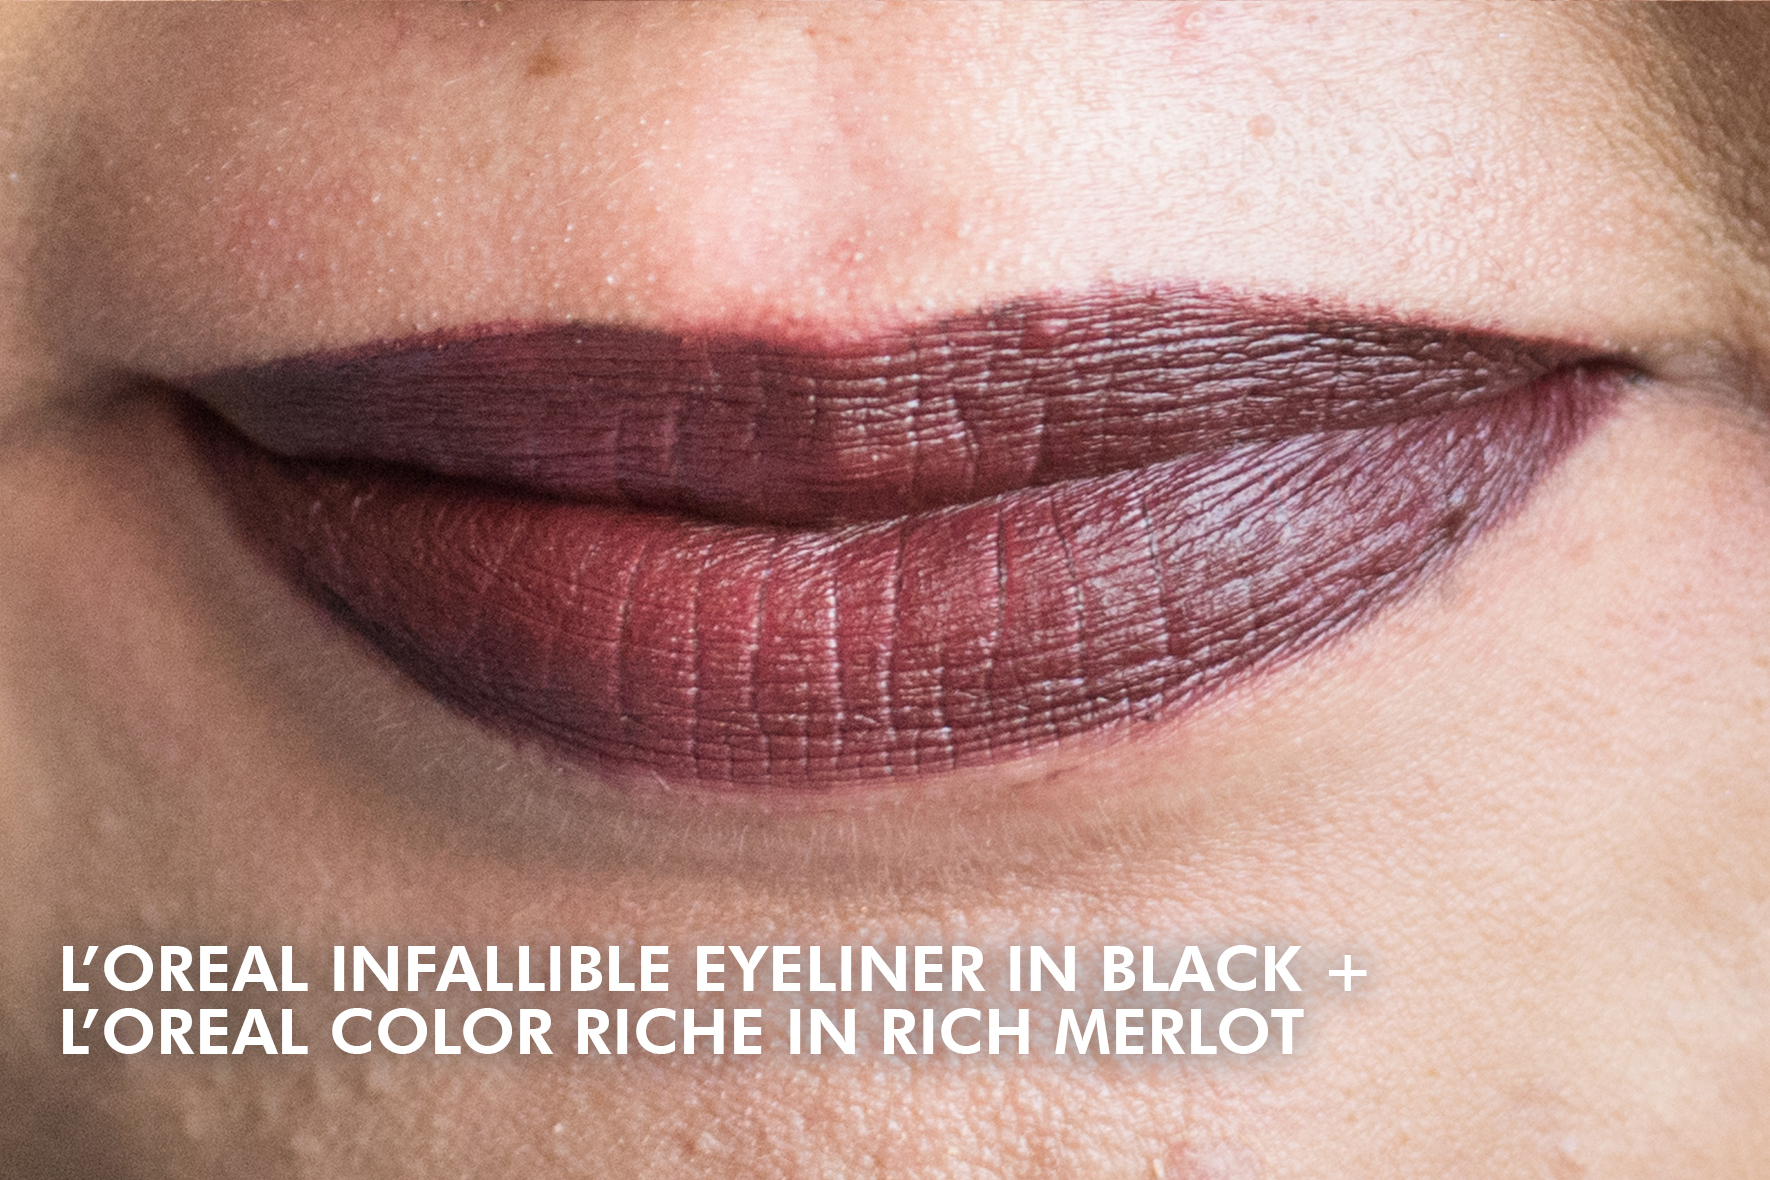 eyeliner-as-lip-liner-lip-swatches_review-philippines_2019-12.jpg